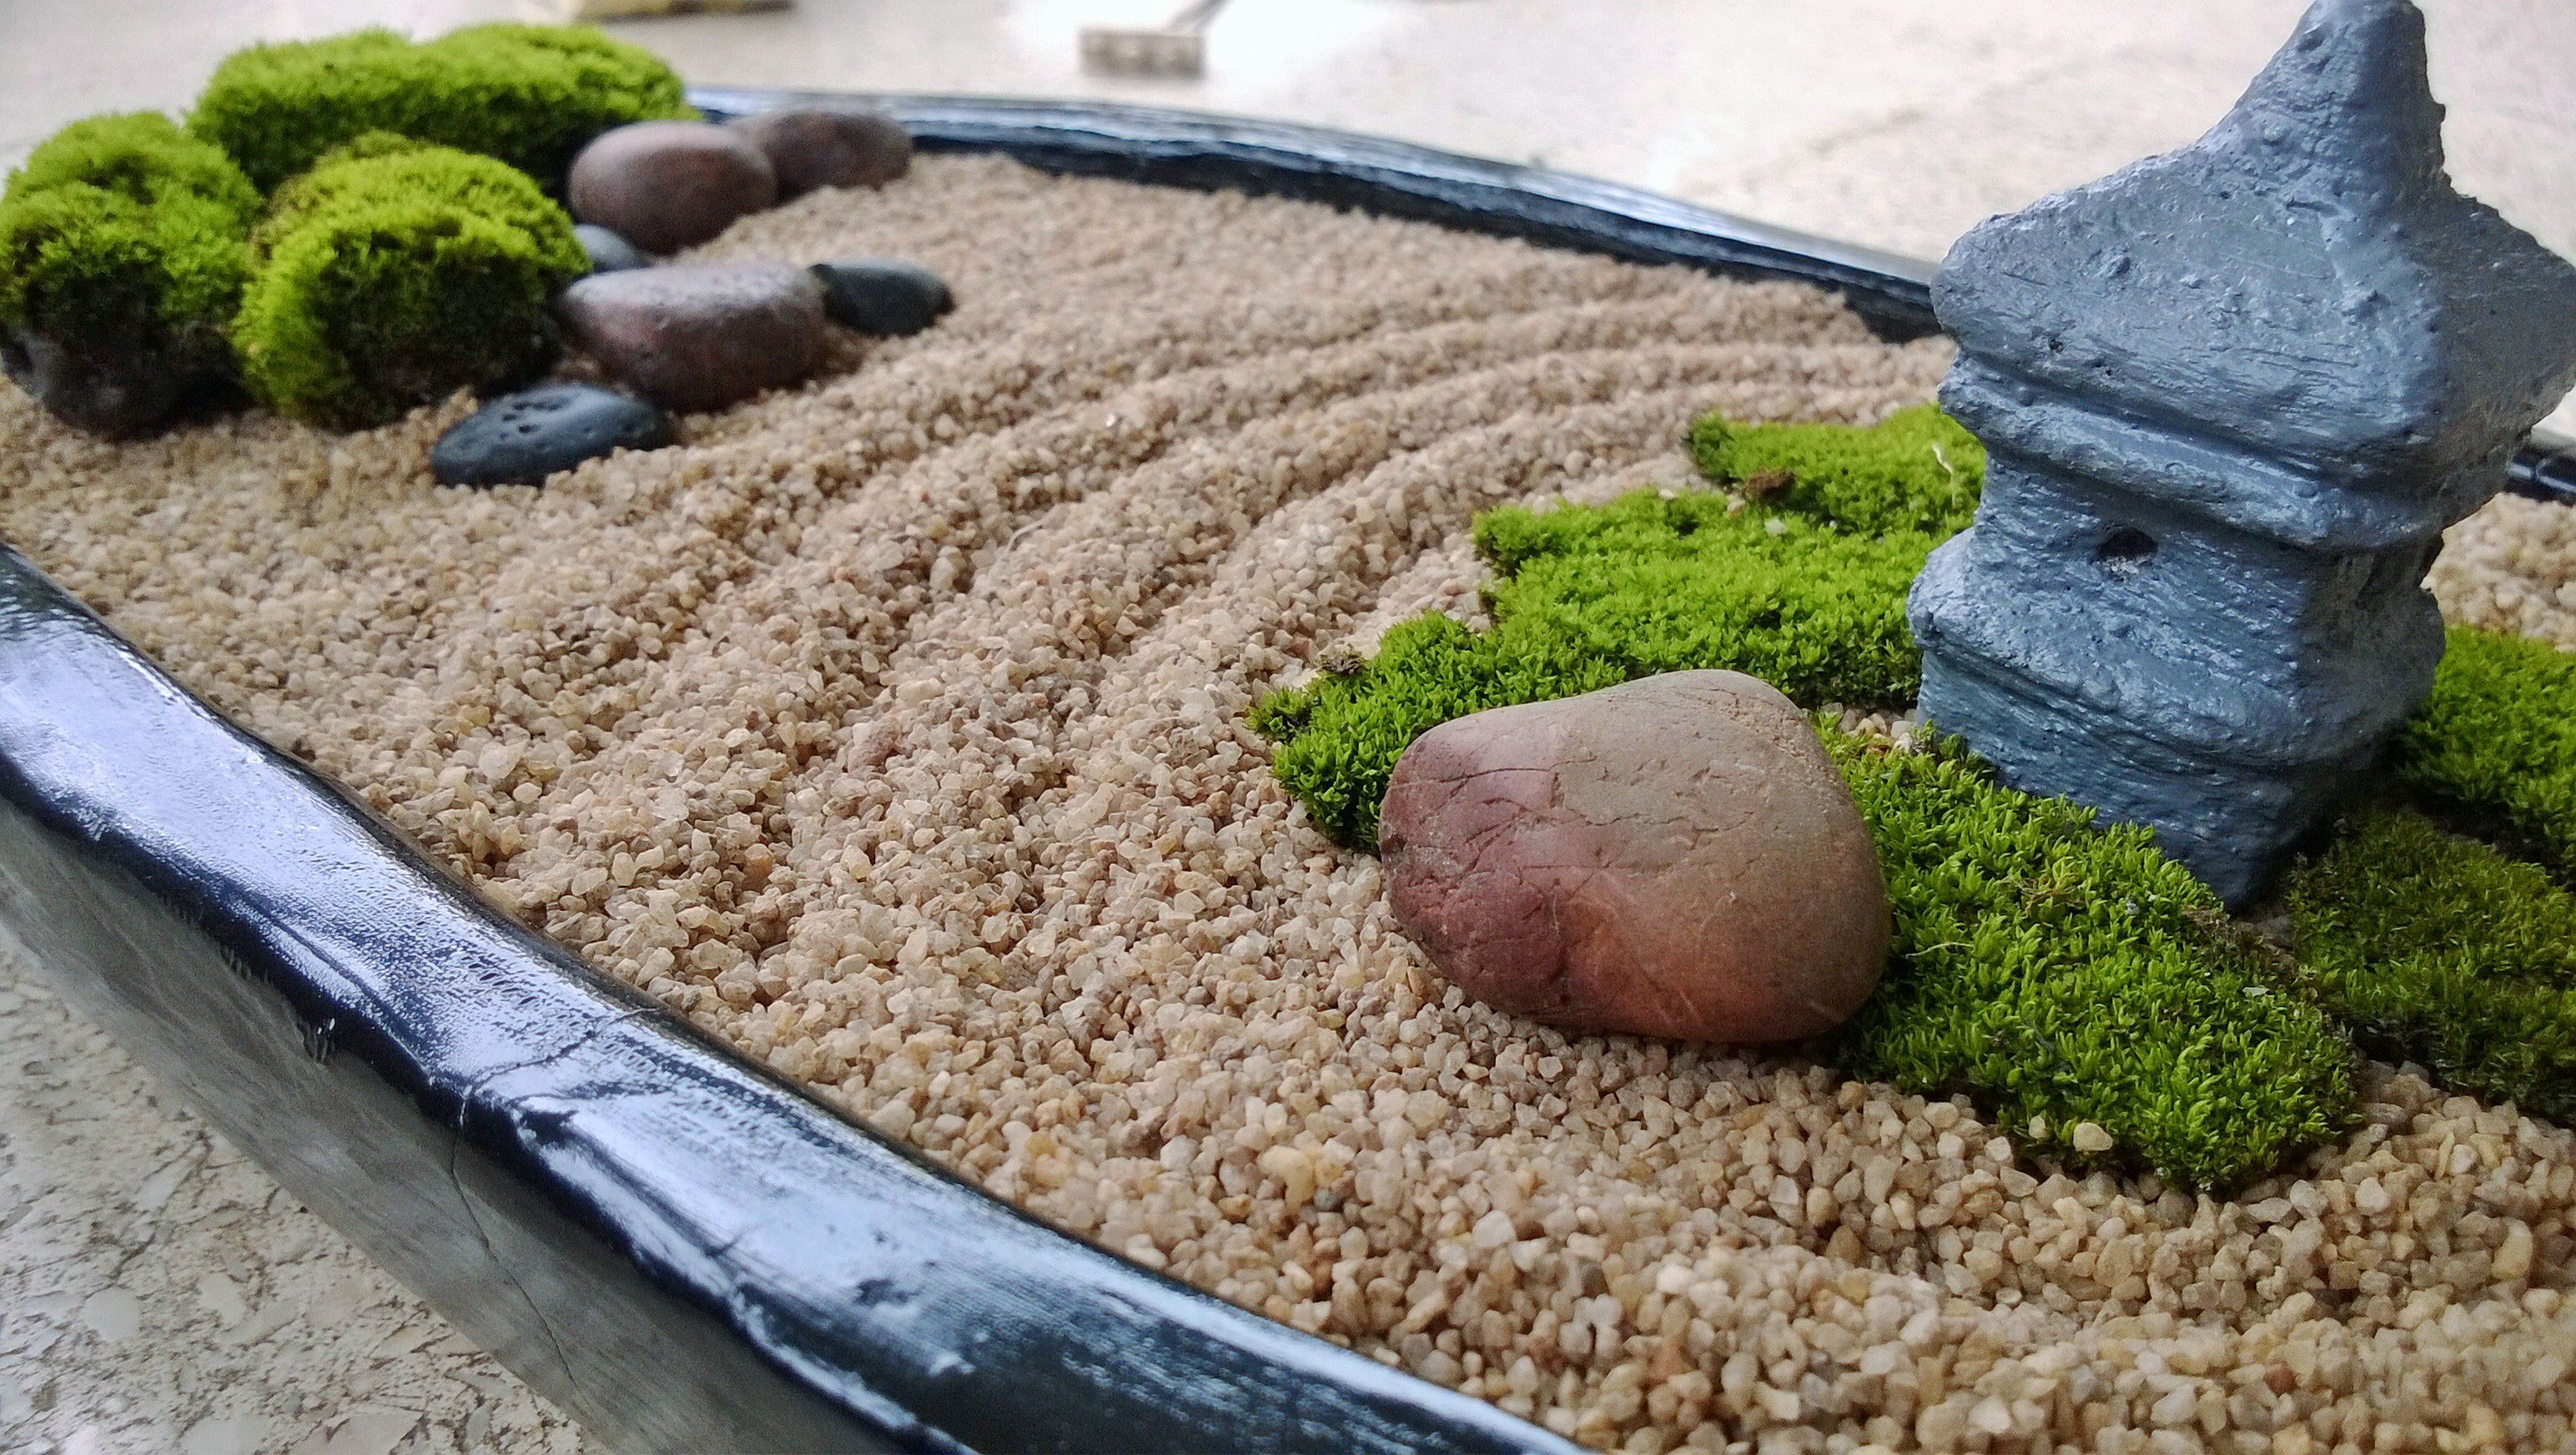 Black Oval Mini Zen Garden, DIY Part 89